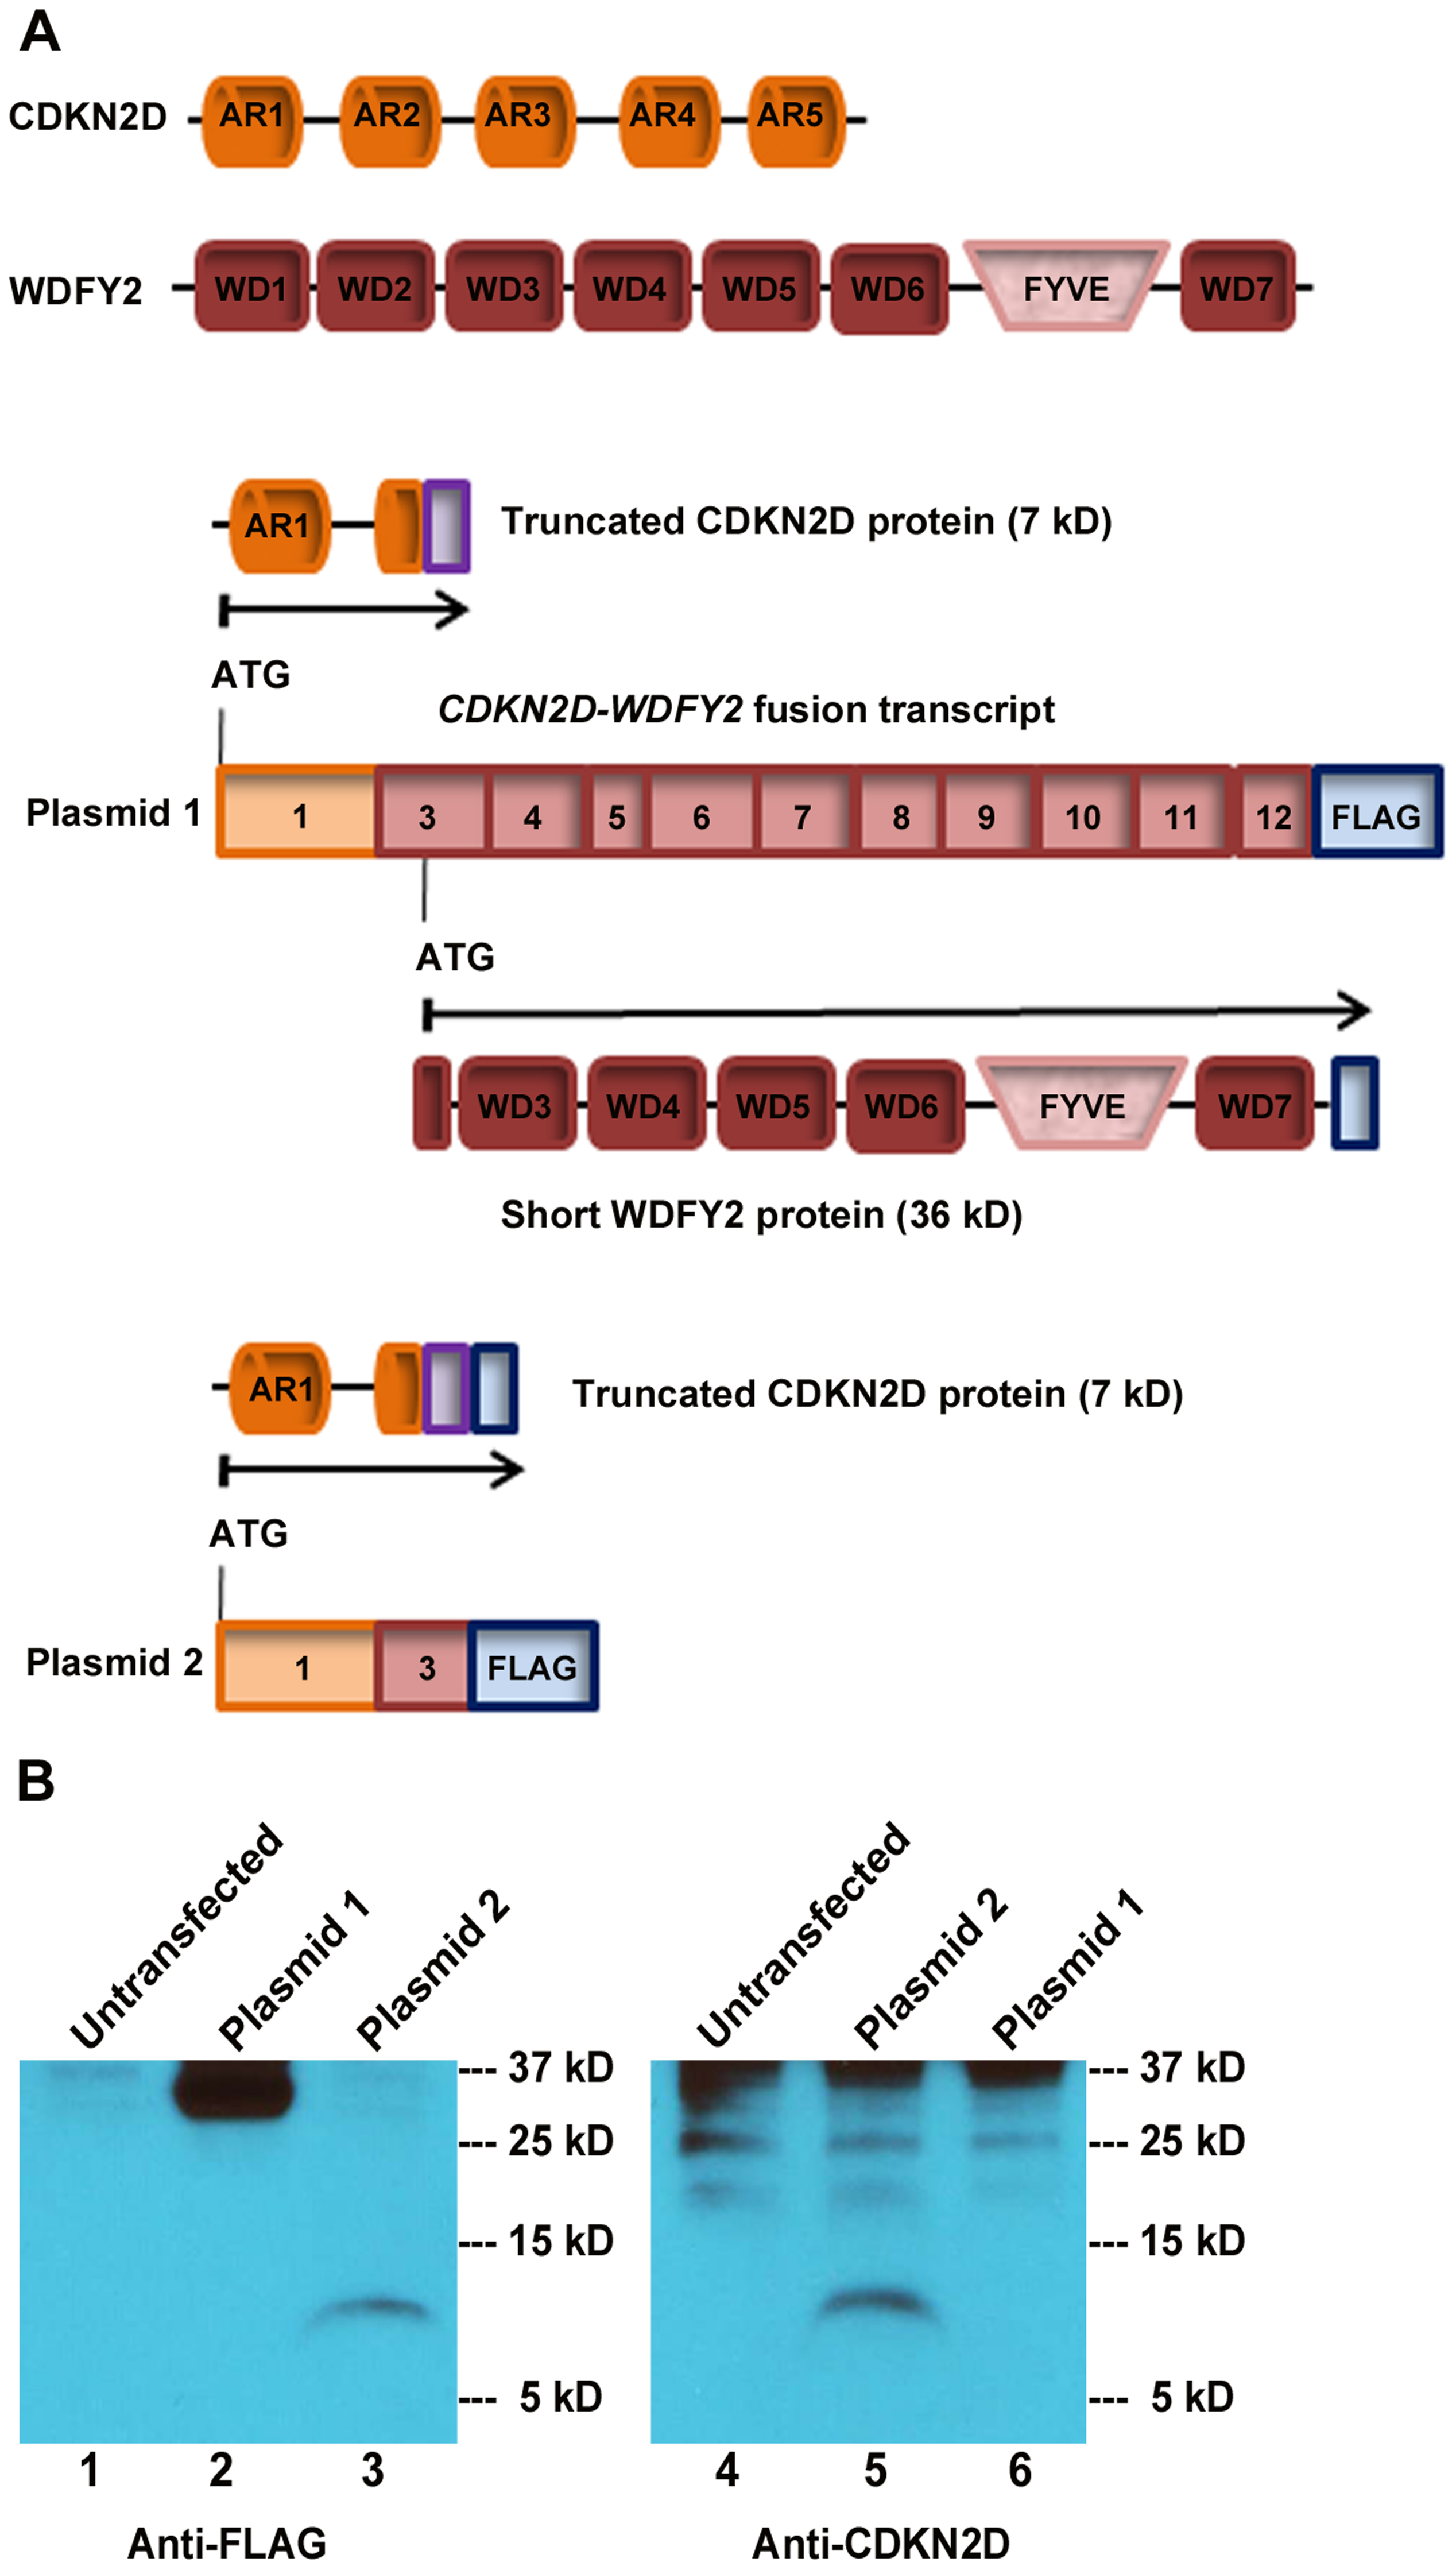 <i>CDKN2D-WDFY2</i> fusion transcript gives rise to a short WDFY2 protein isoform.